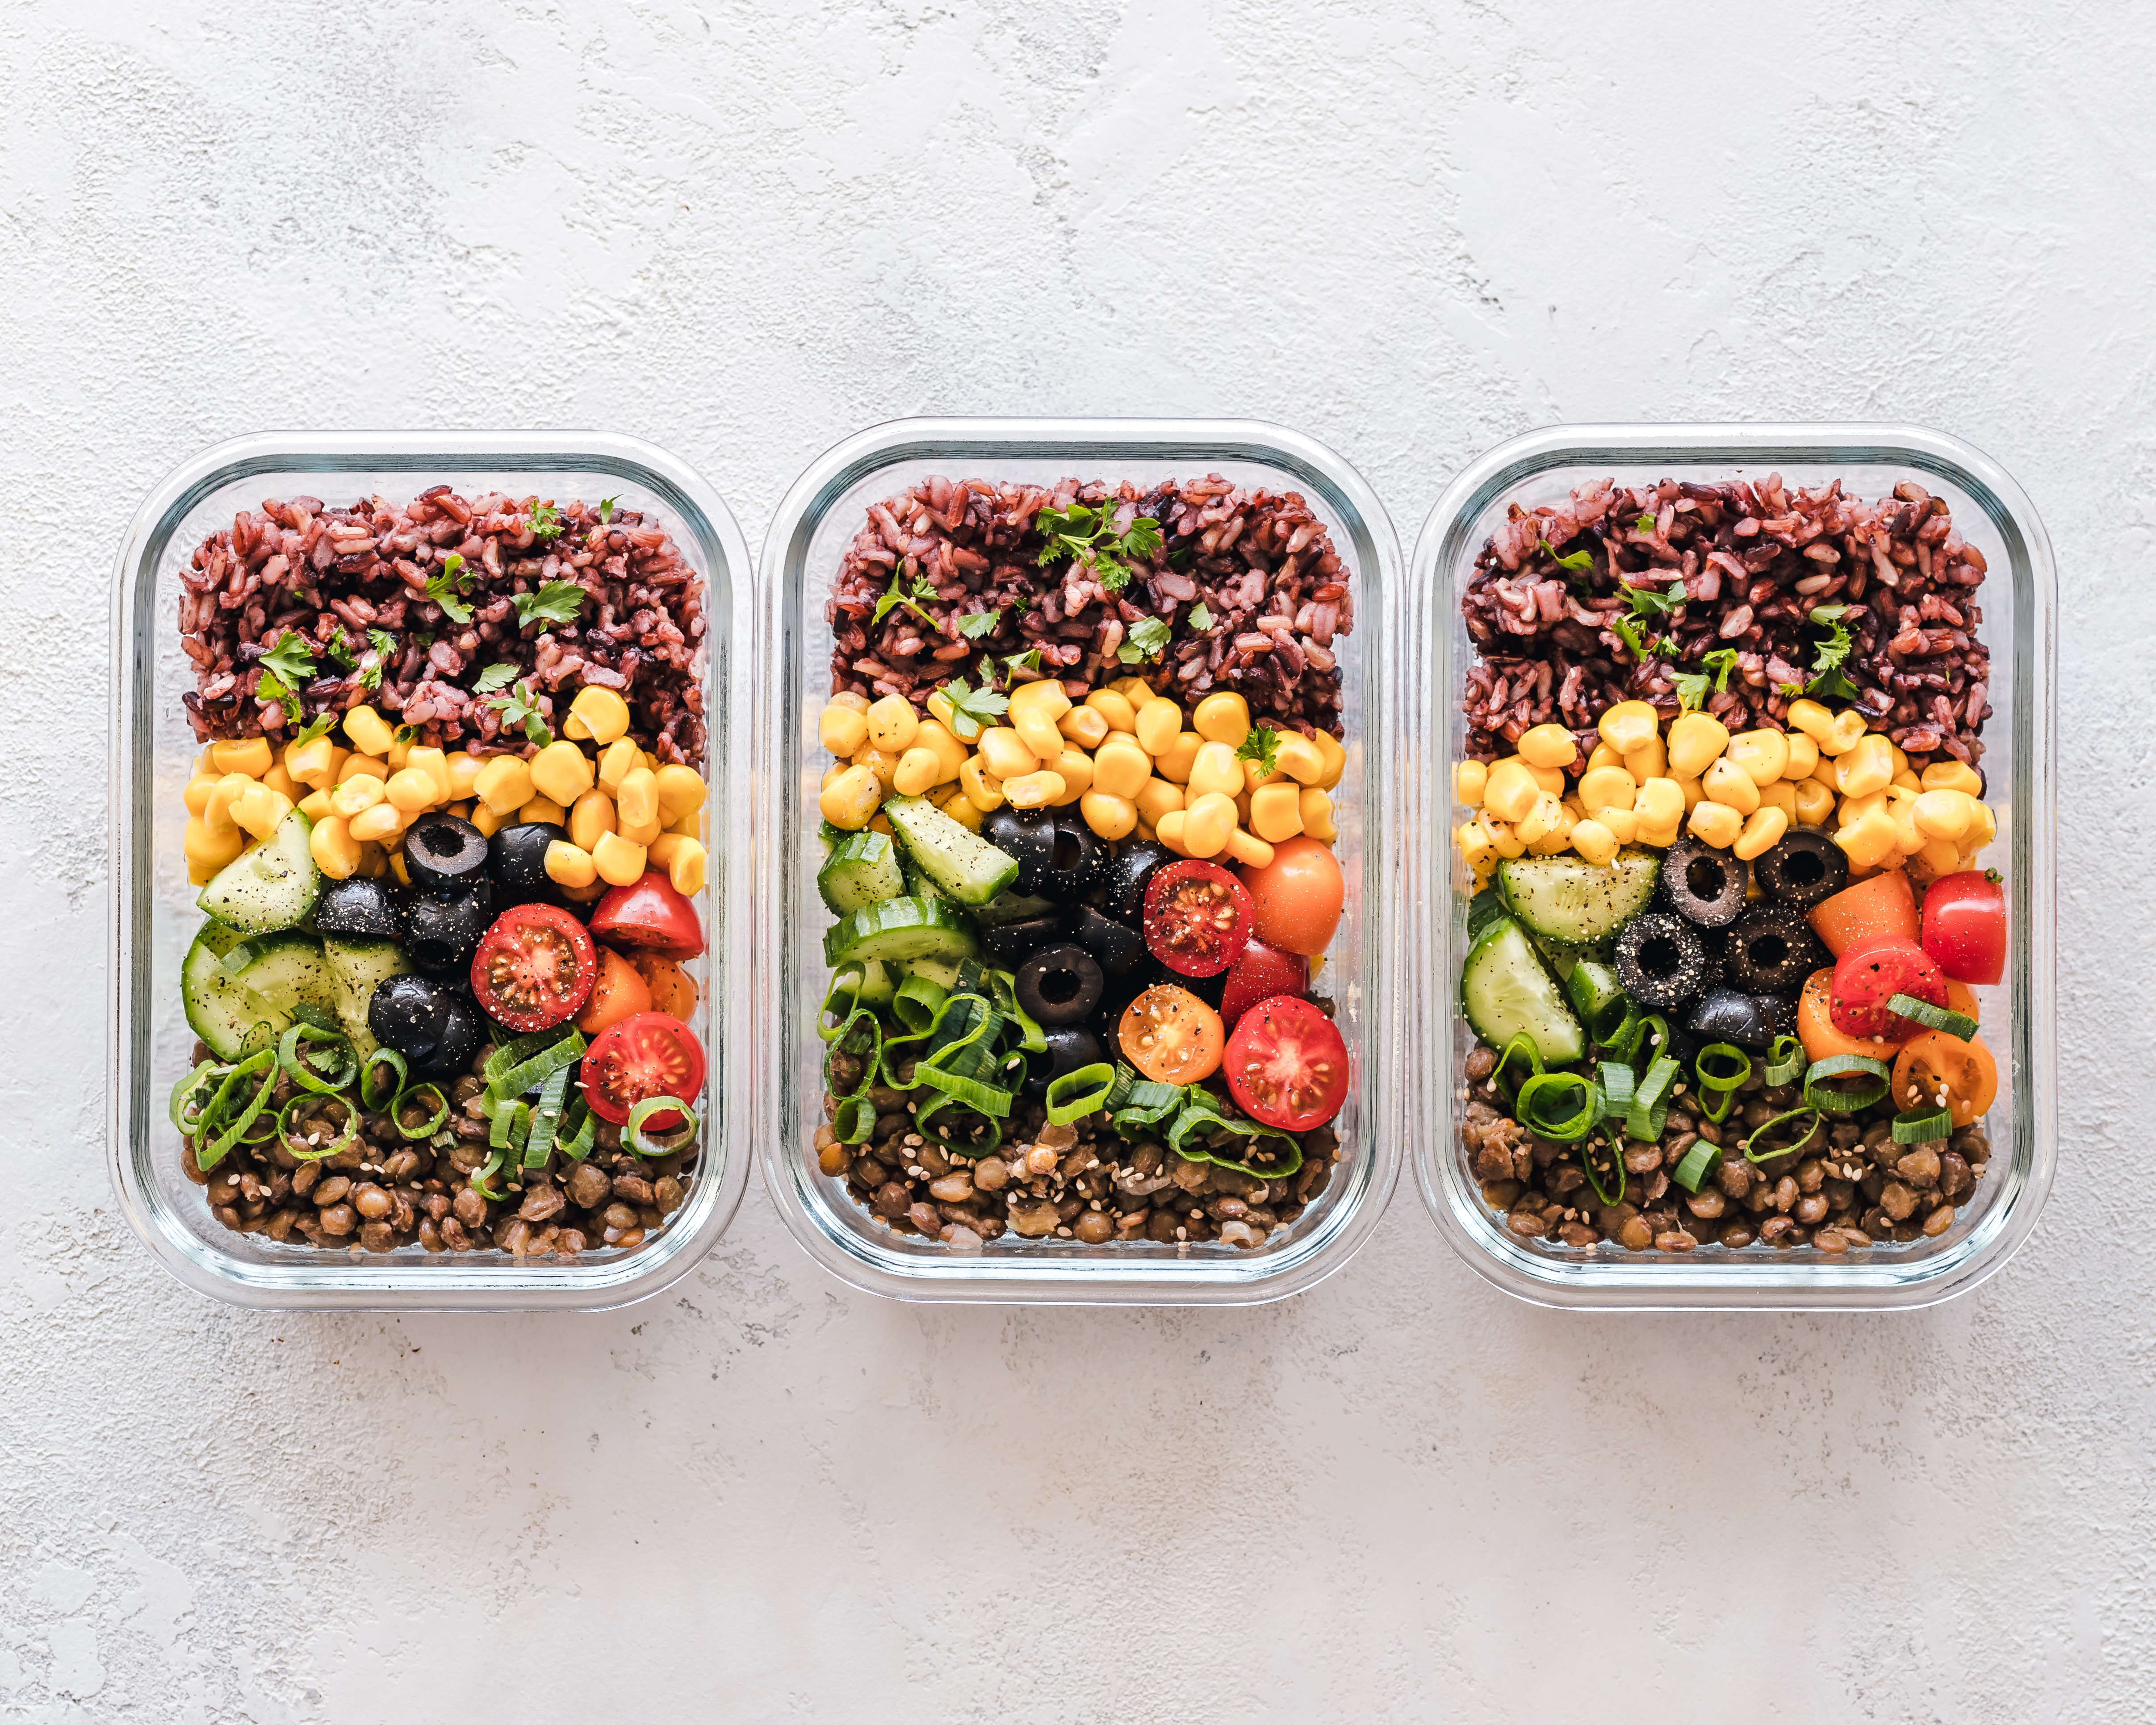 Meal Prepping: A Beginner's Guide